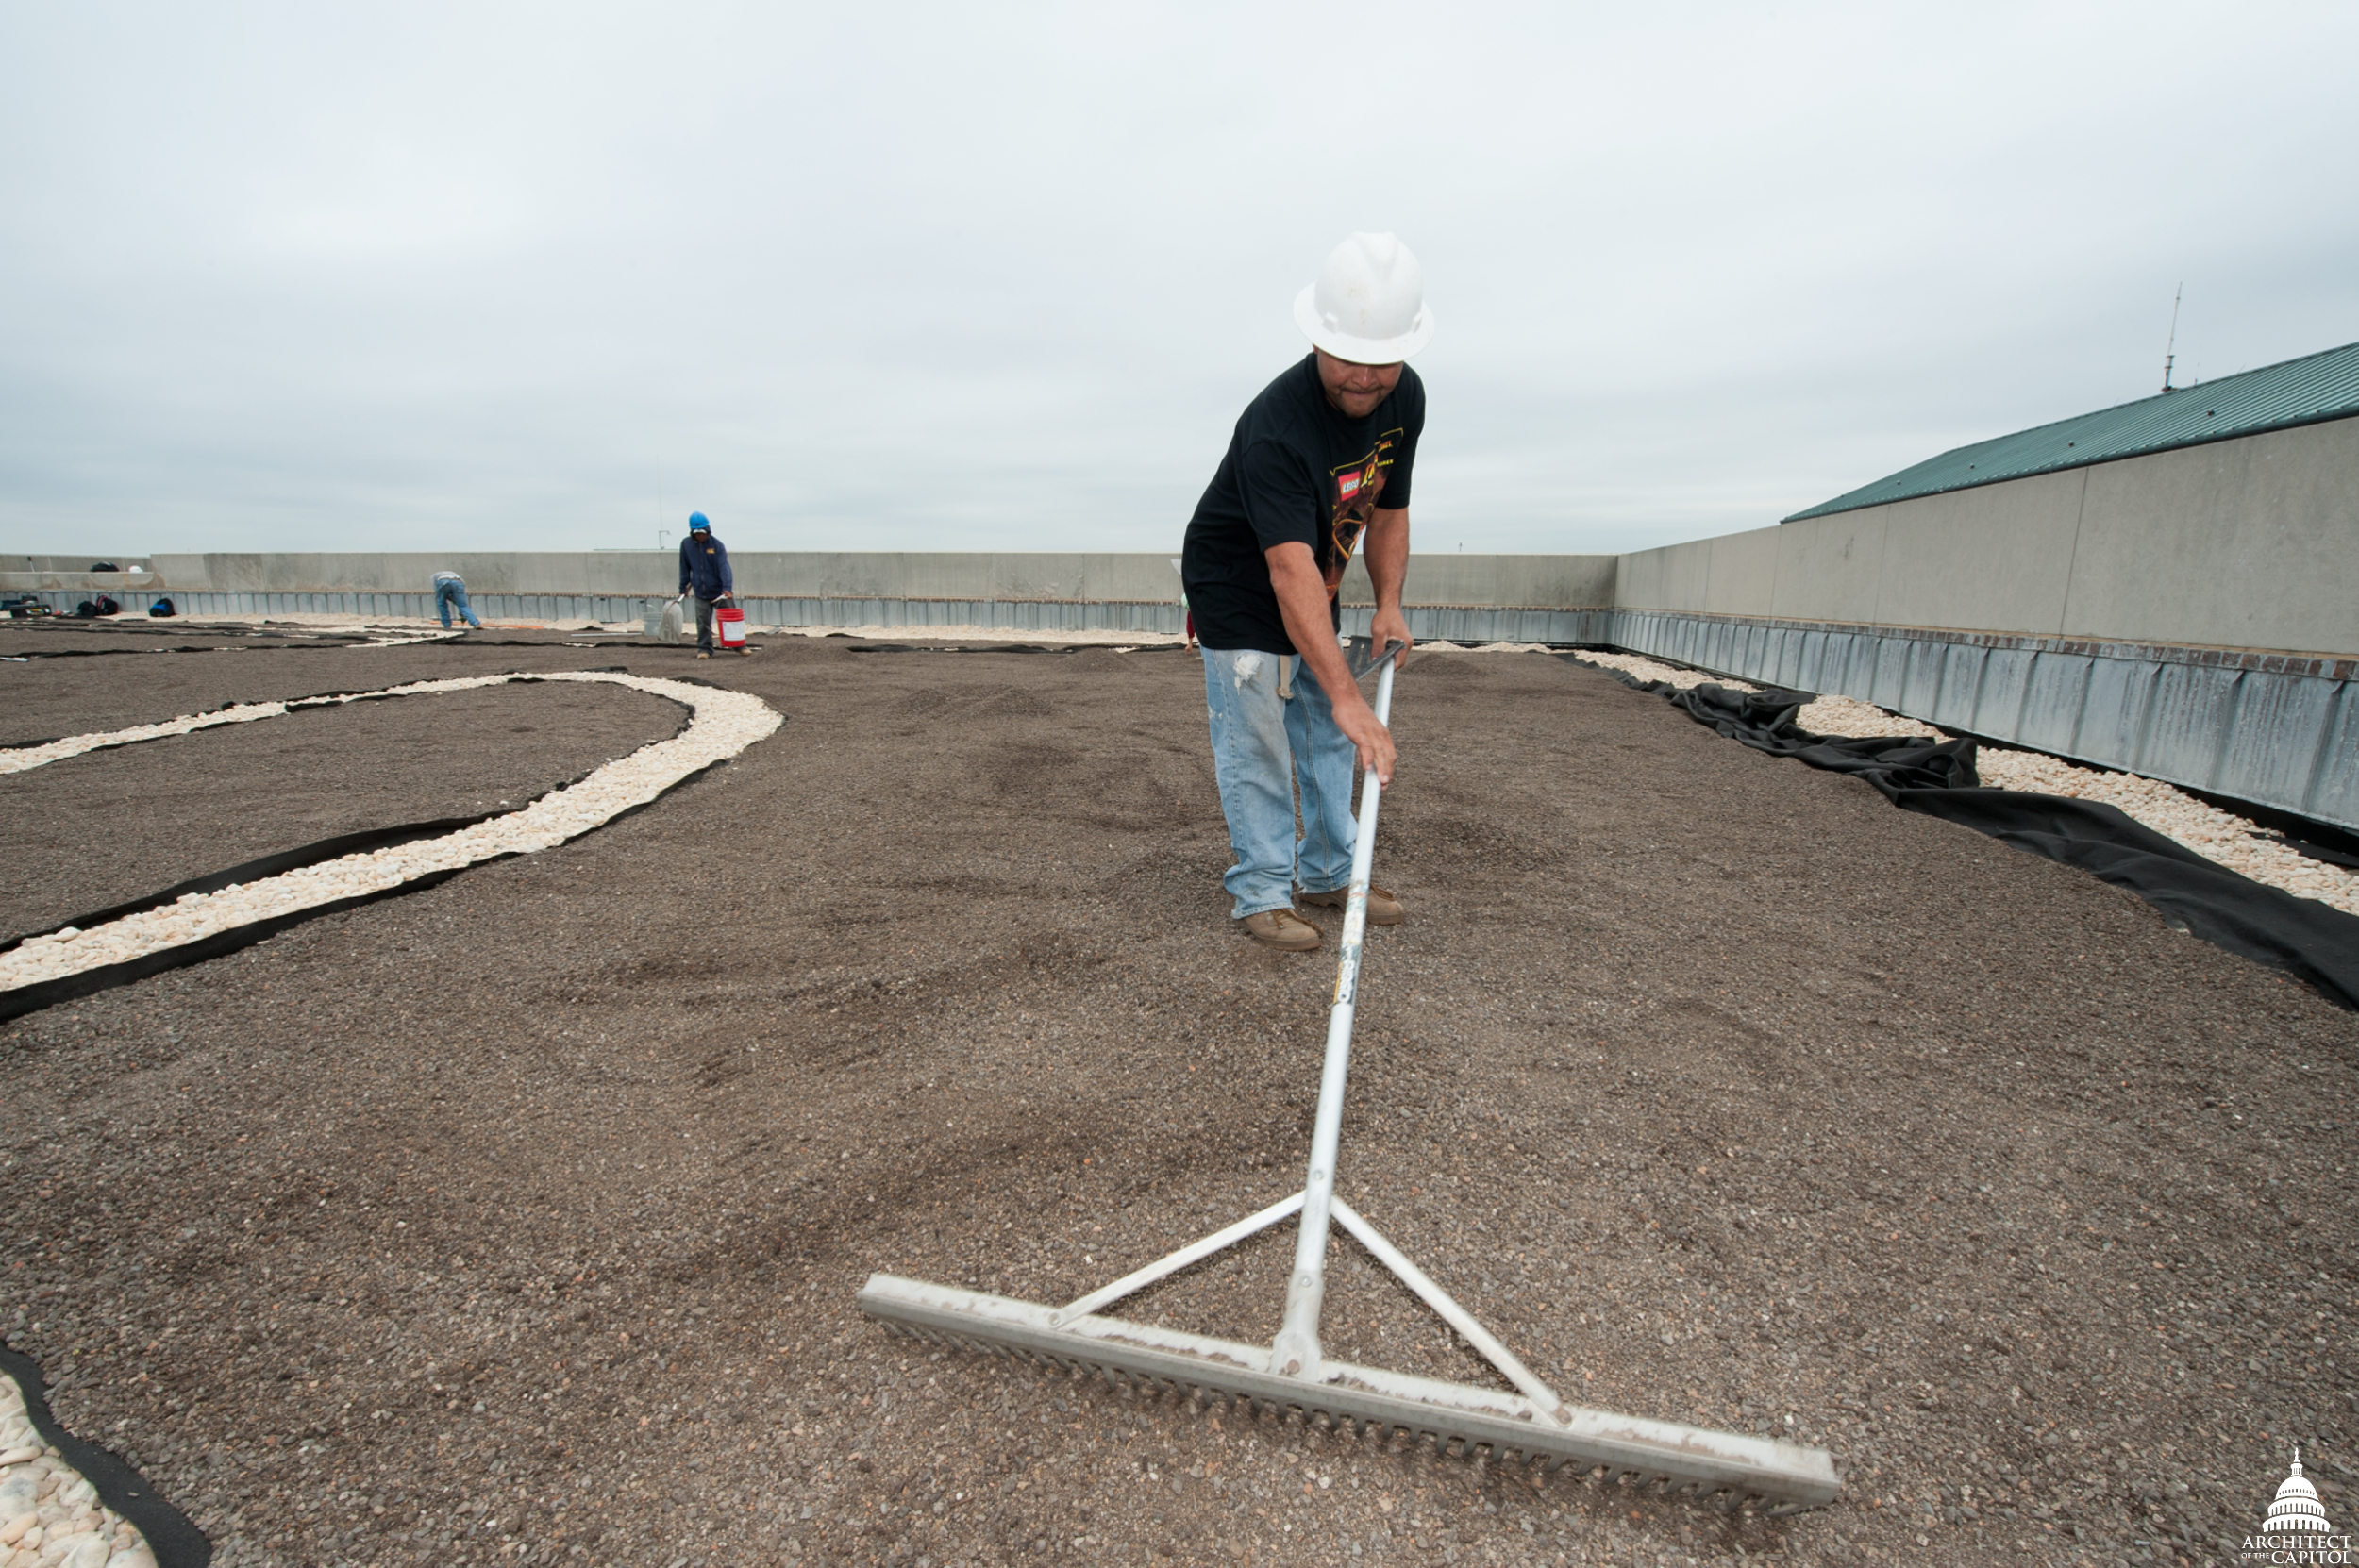 A worker levels the soil on the Dirksen Building roof. At this point of the project, the gravel ballast for the walkways has been installed.